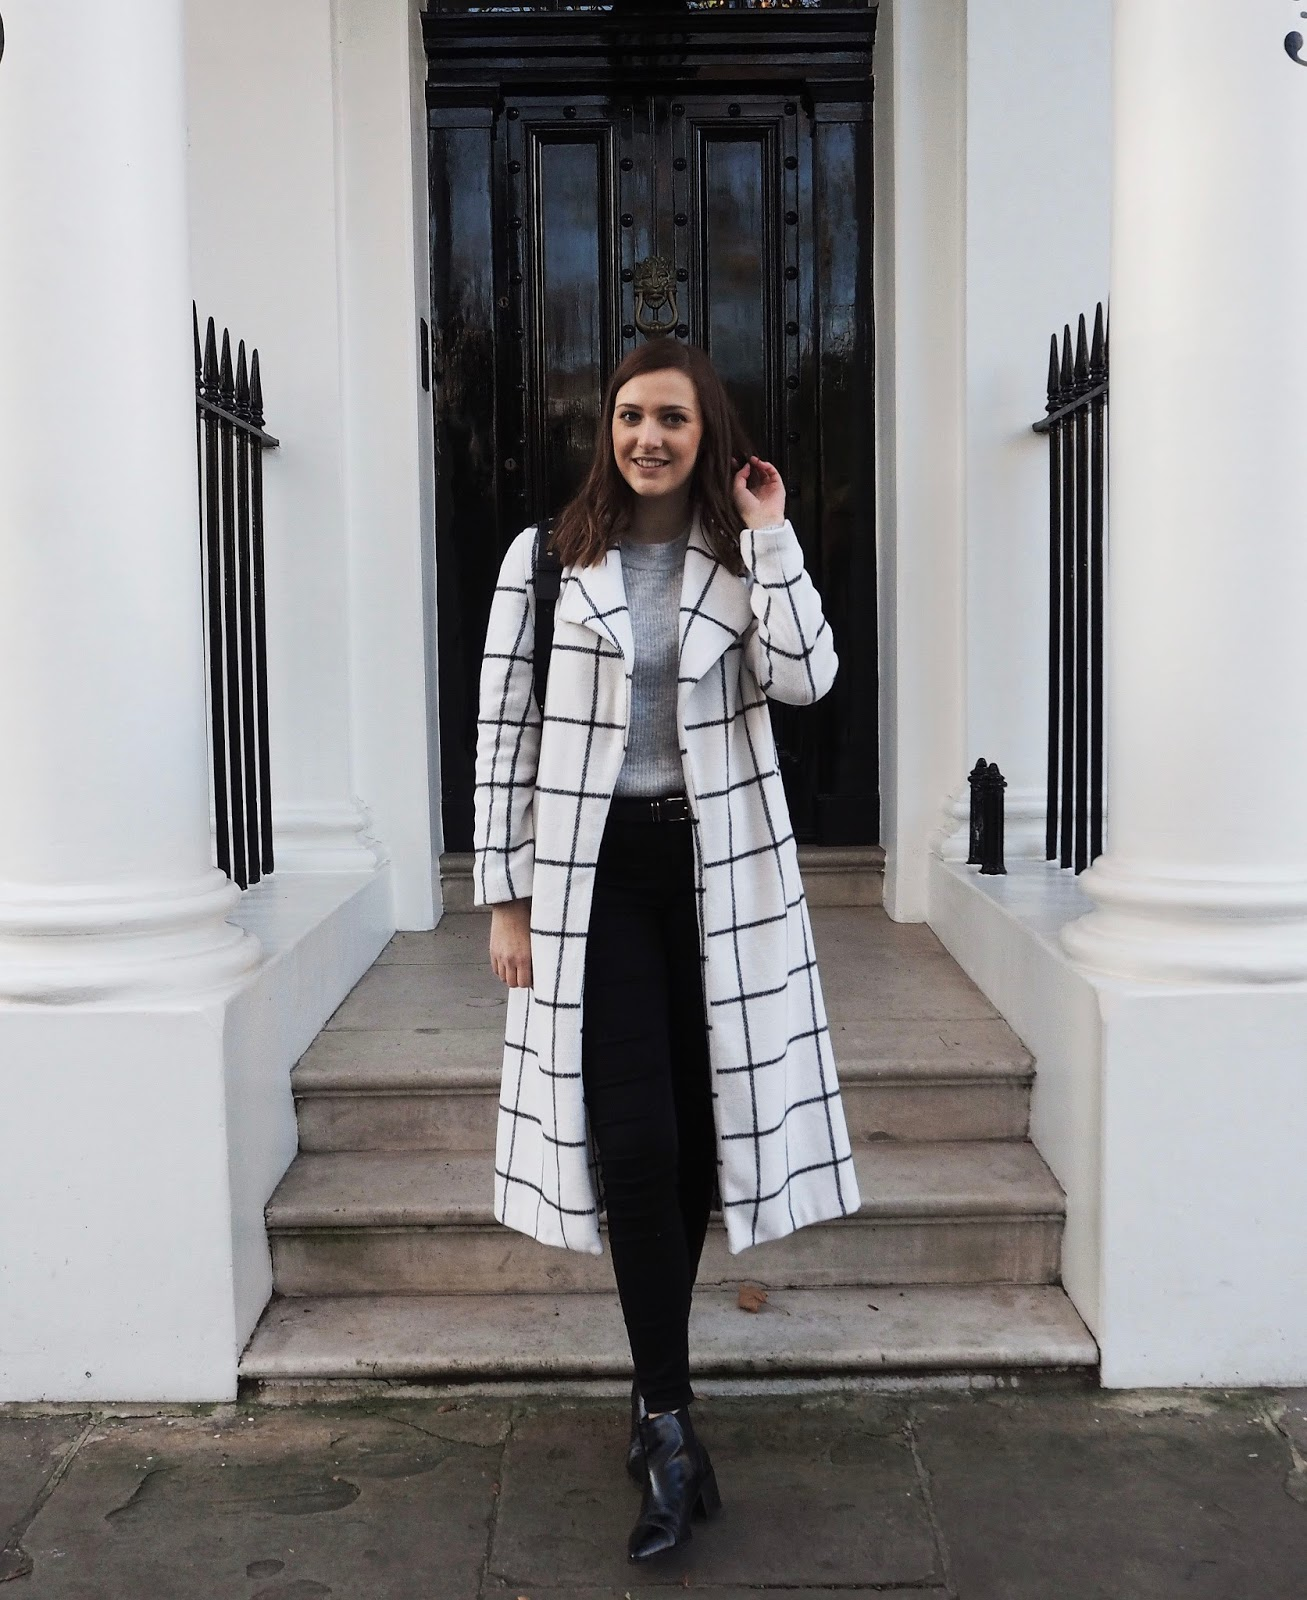 LAUREN ROSE STYLE - STREET STYLE LONDON - MONOCHROME CHECK JACKET - FASHION BLOGGER